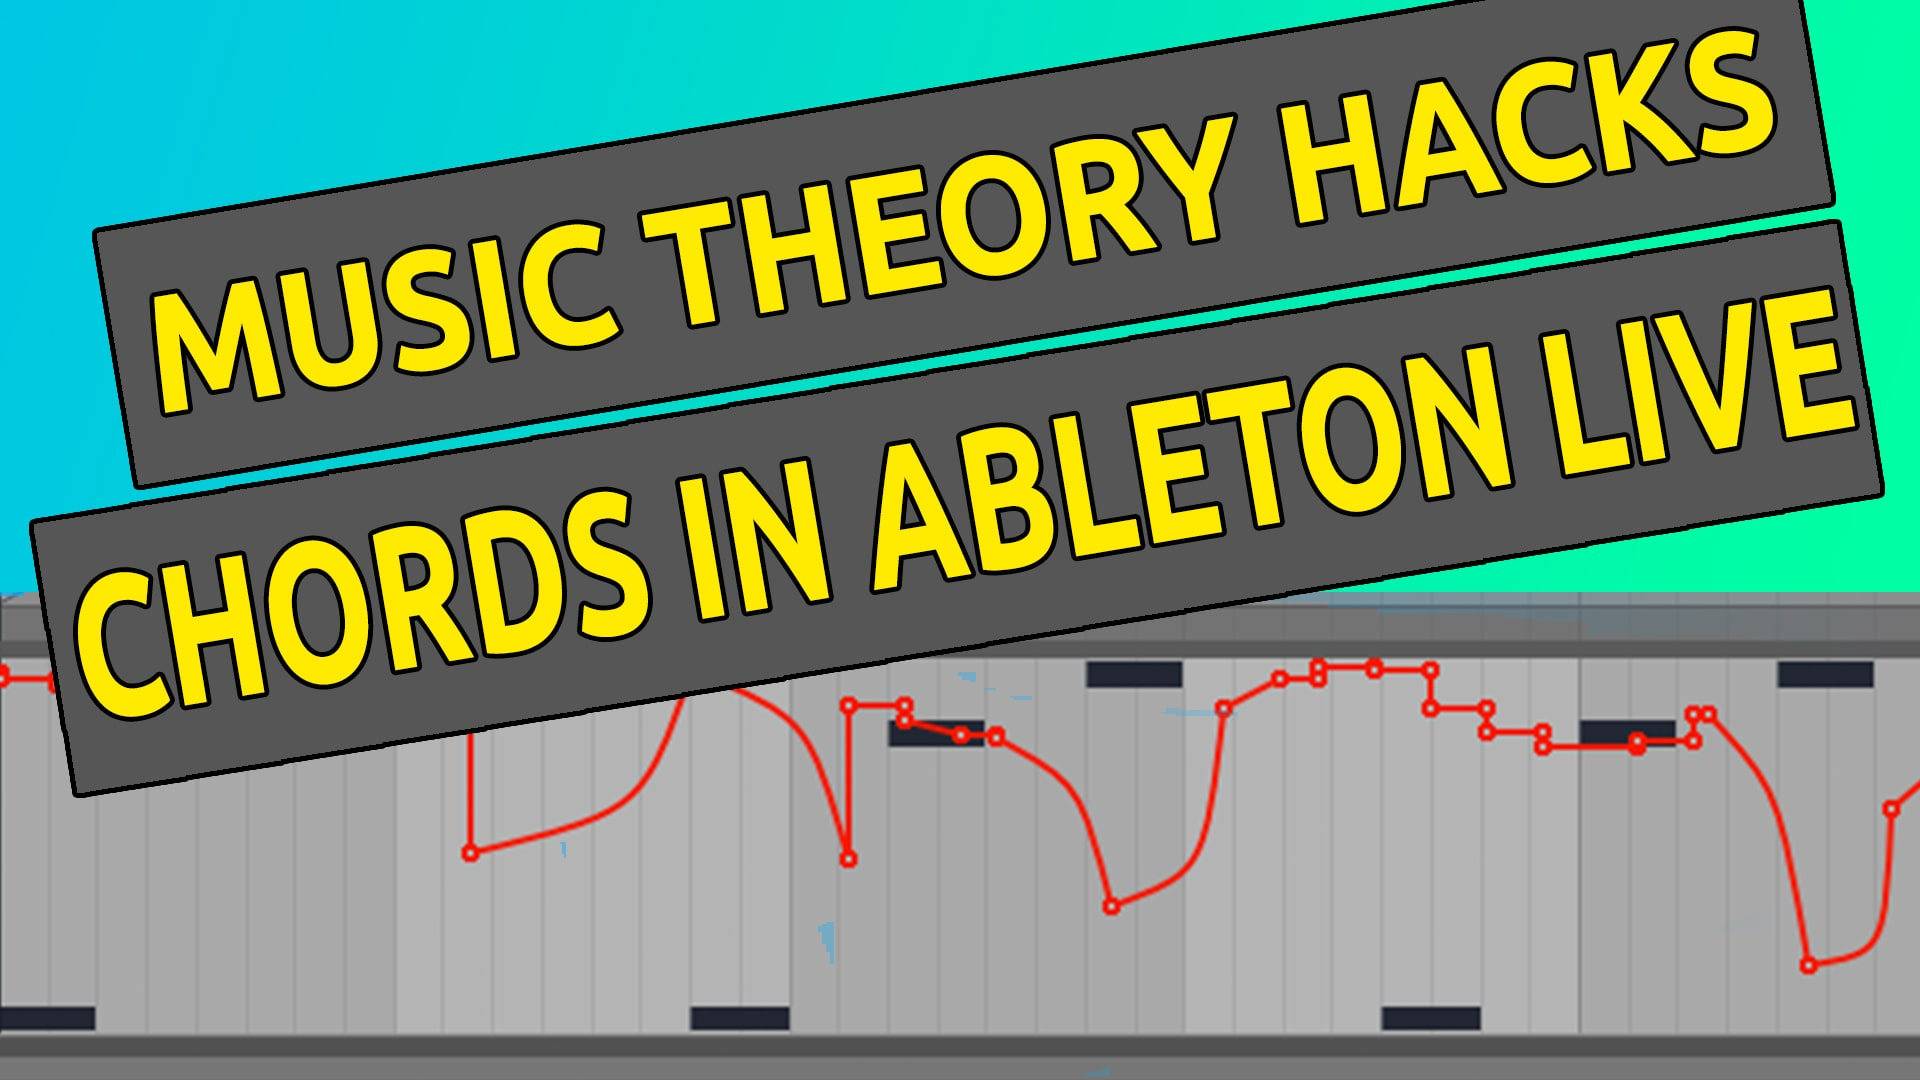 Music Theory Hacks - 5 Tips To Make Chord Progressions with